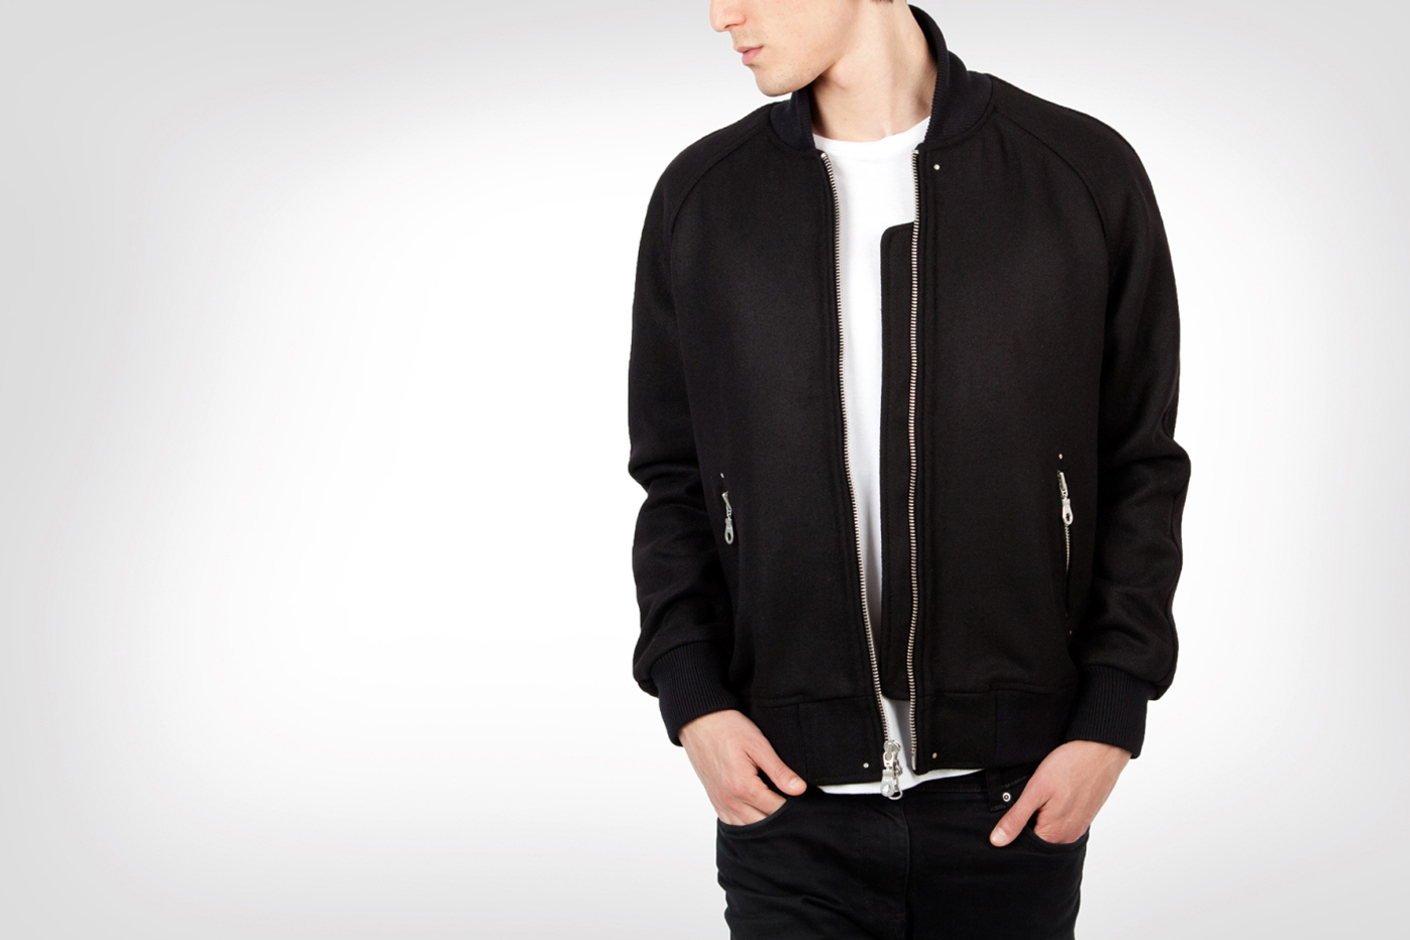 Image of MKI Black 2013 Full Wool Varsity Jackets